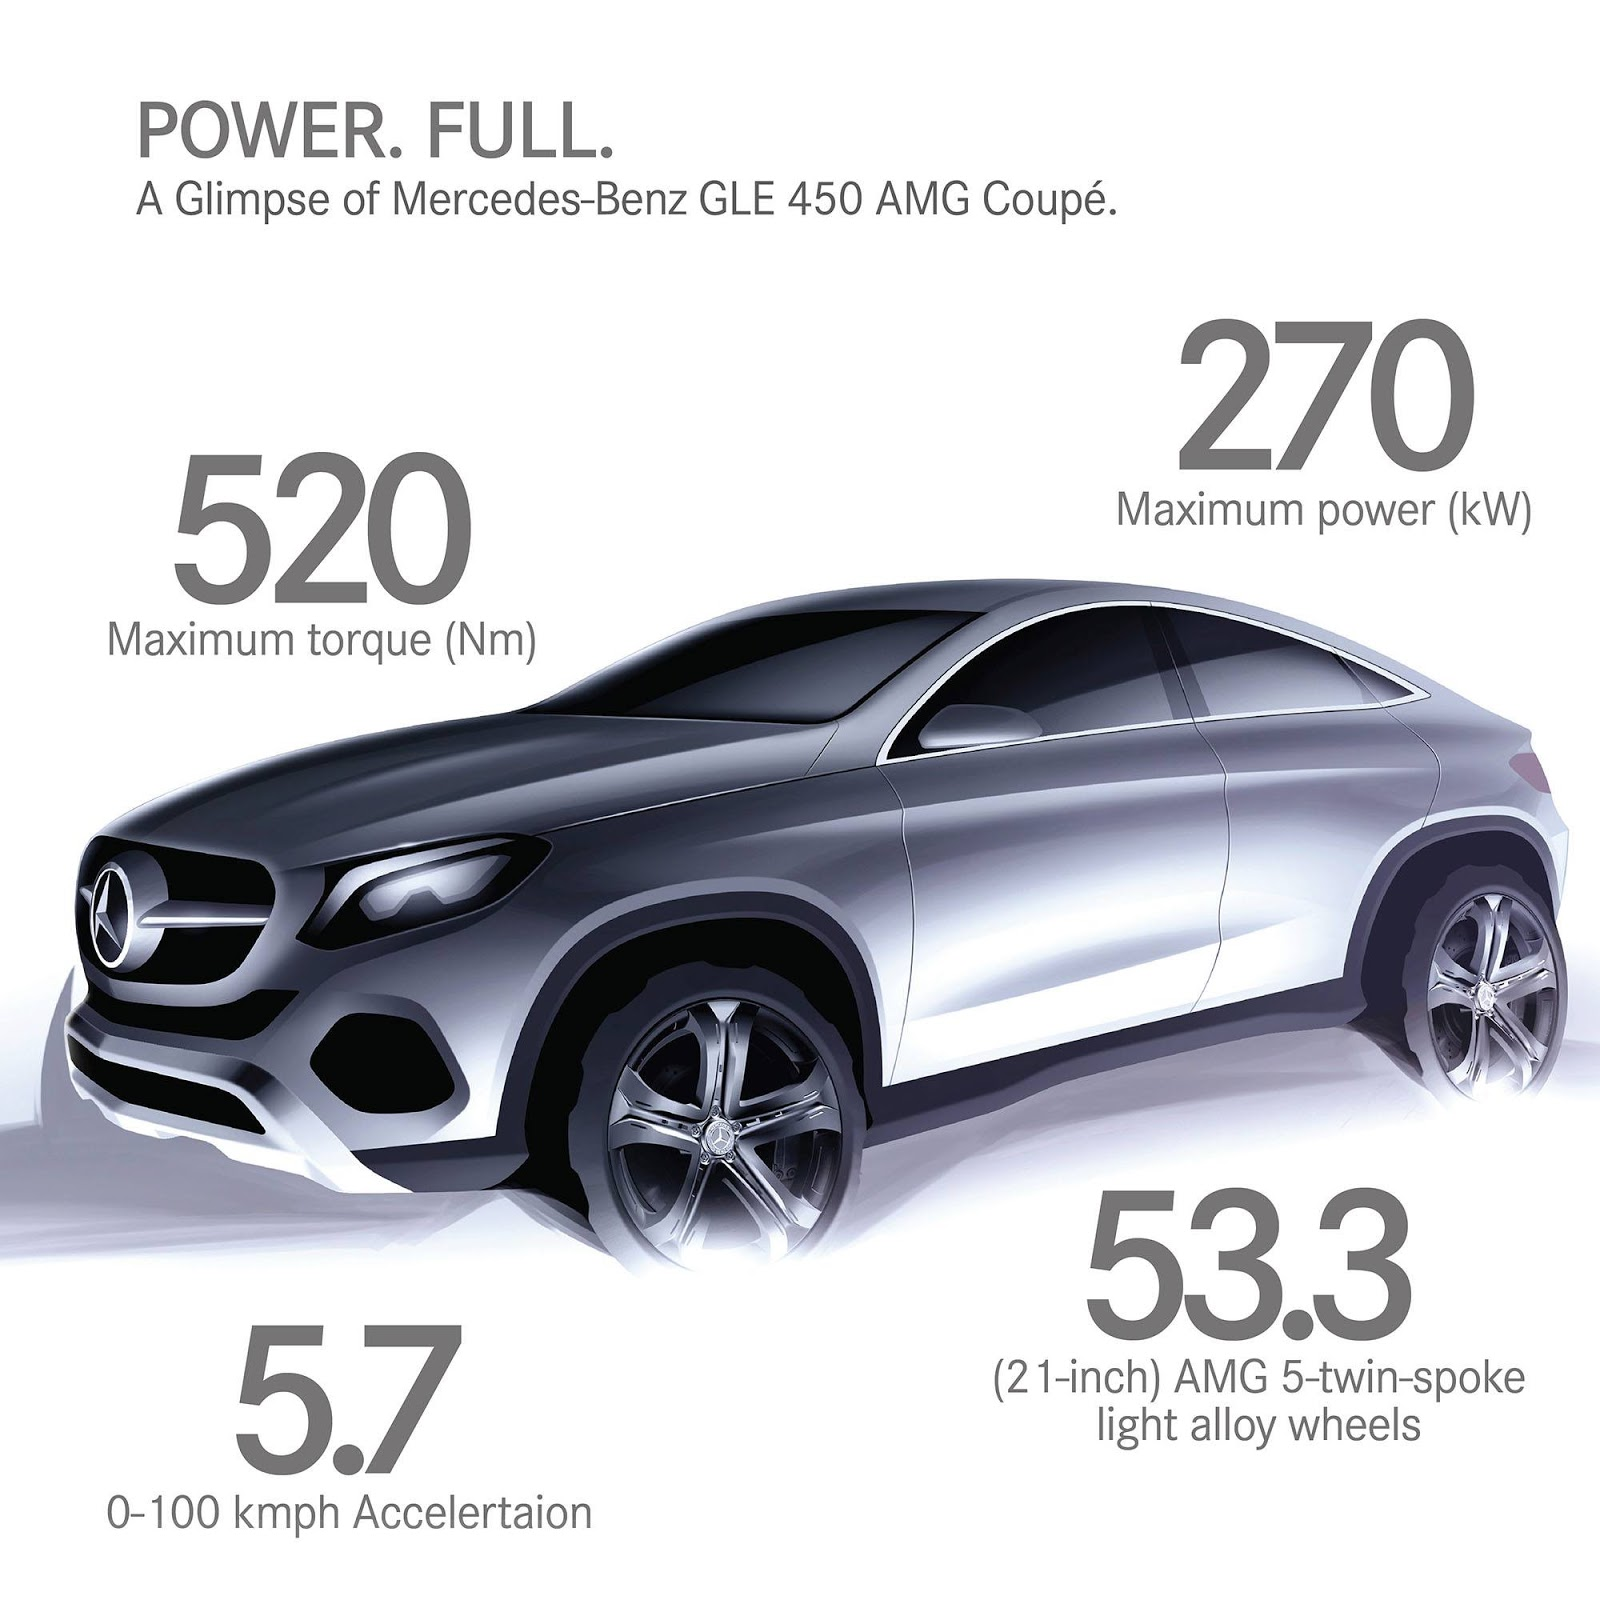 SouLSteer.com: Mercedes-Benz GLE 450 AMG Coupé Launched In